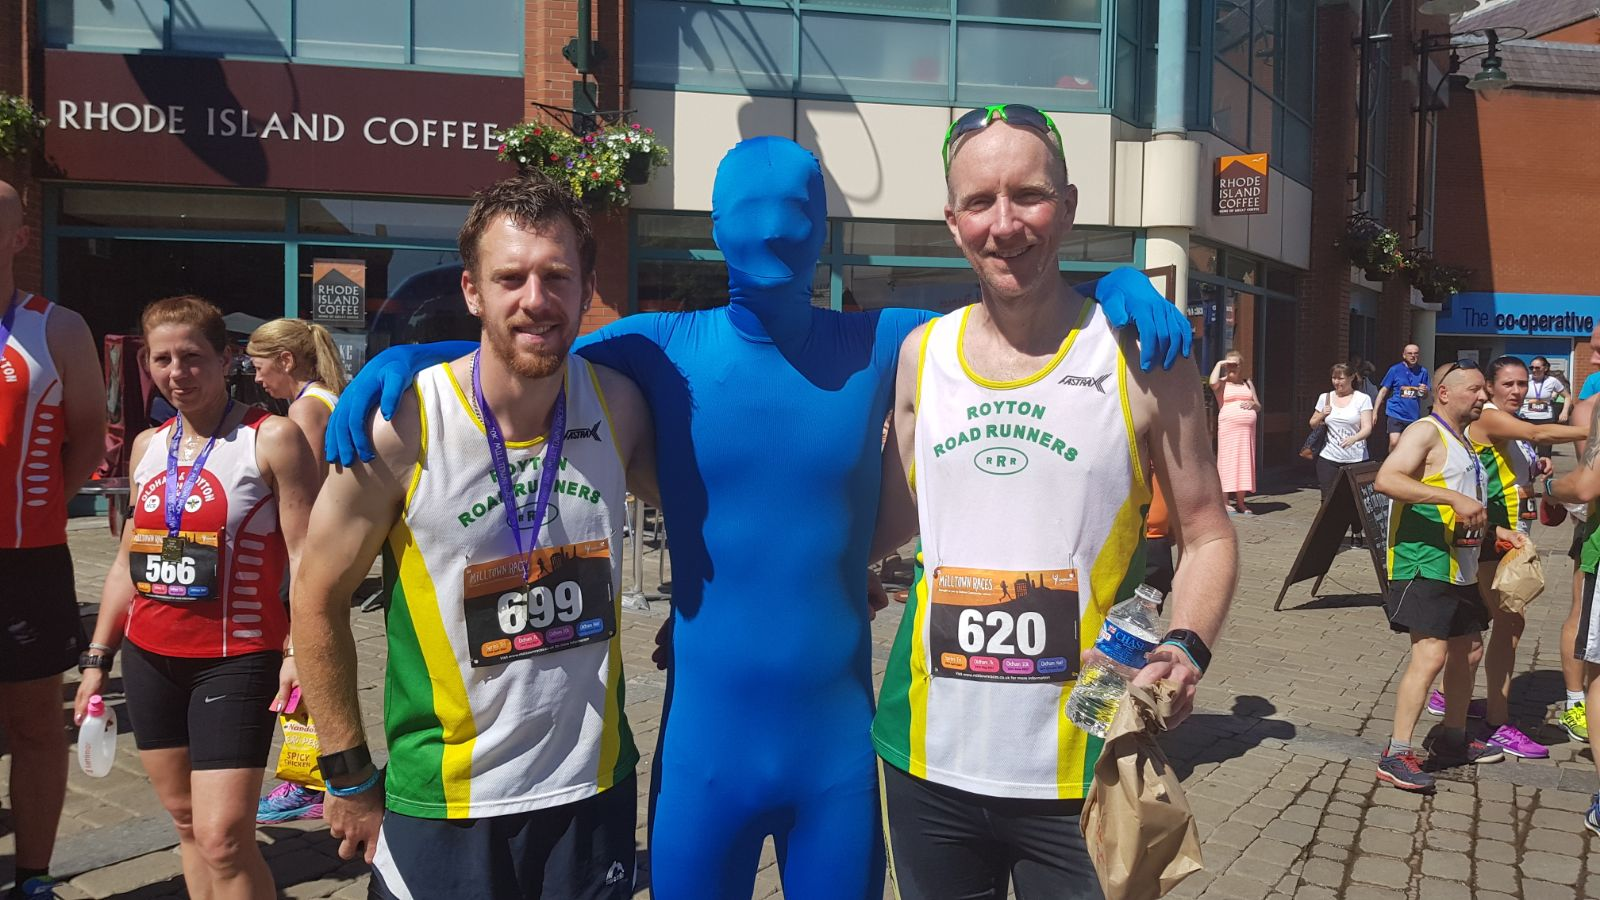 Blue Running Man with Royton Road Runners